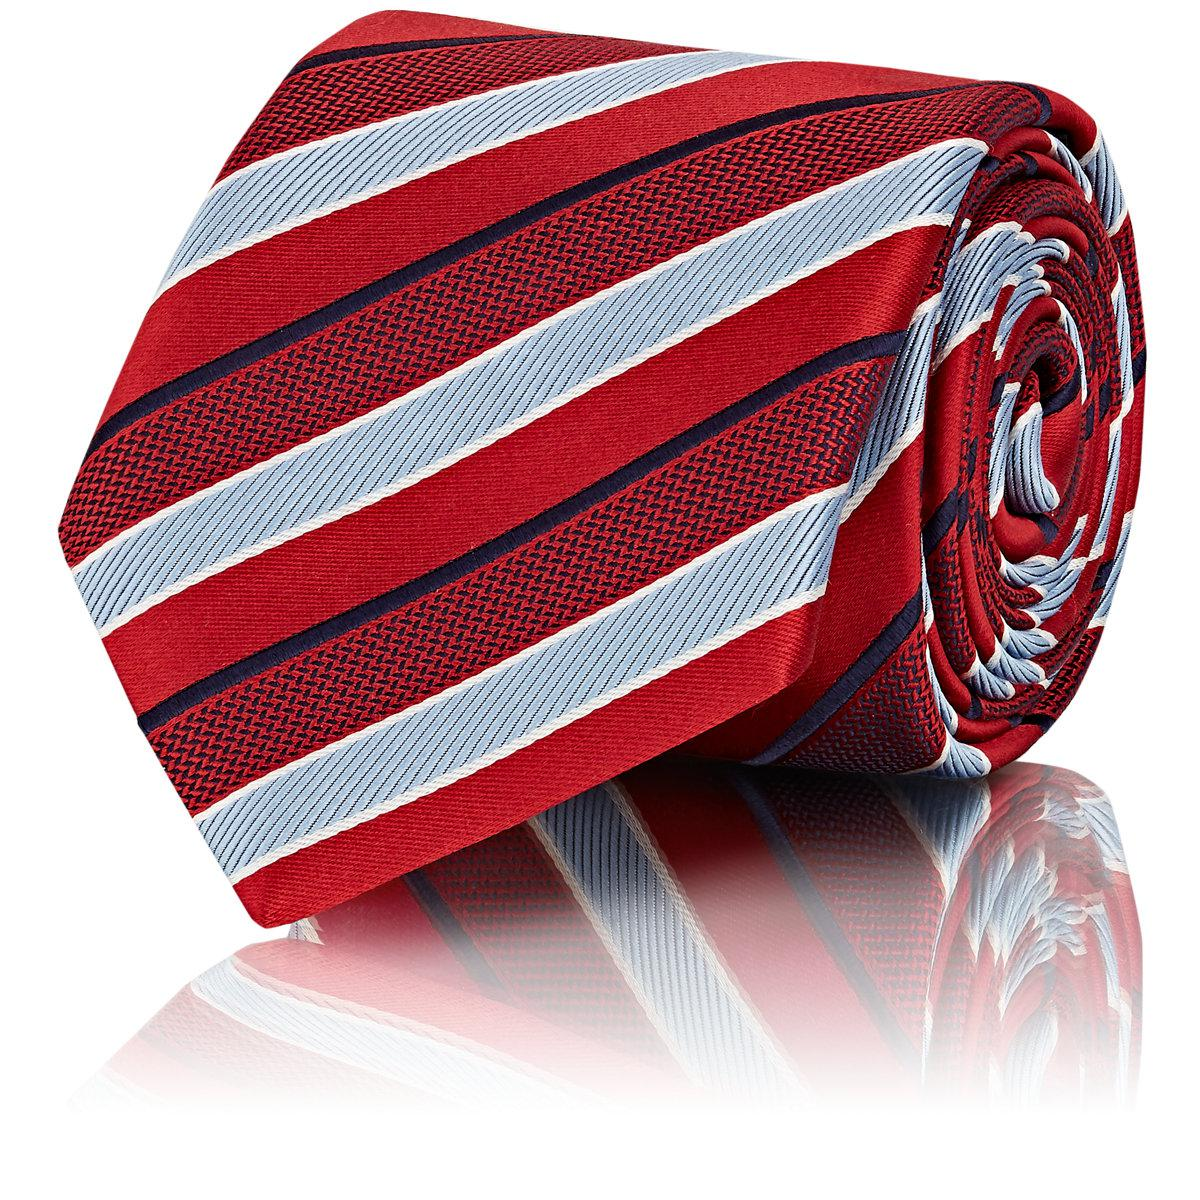 Mens Striped Silk Repp Necktie Brioni rUJUxxM